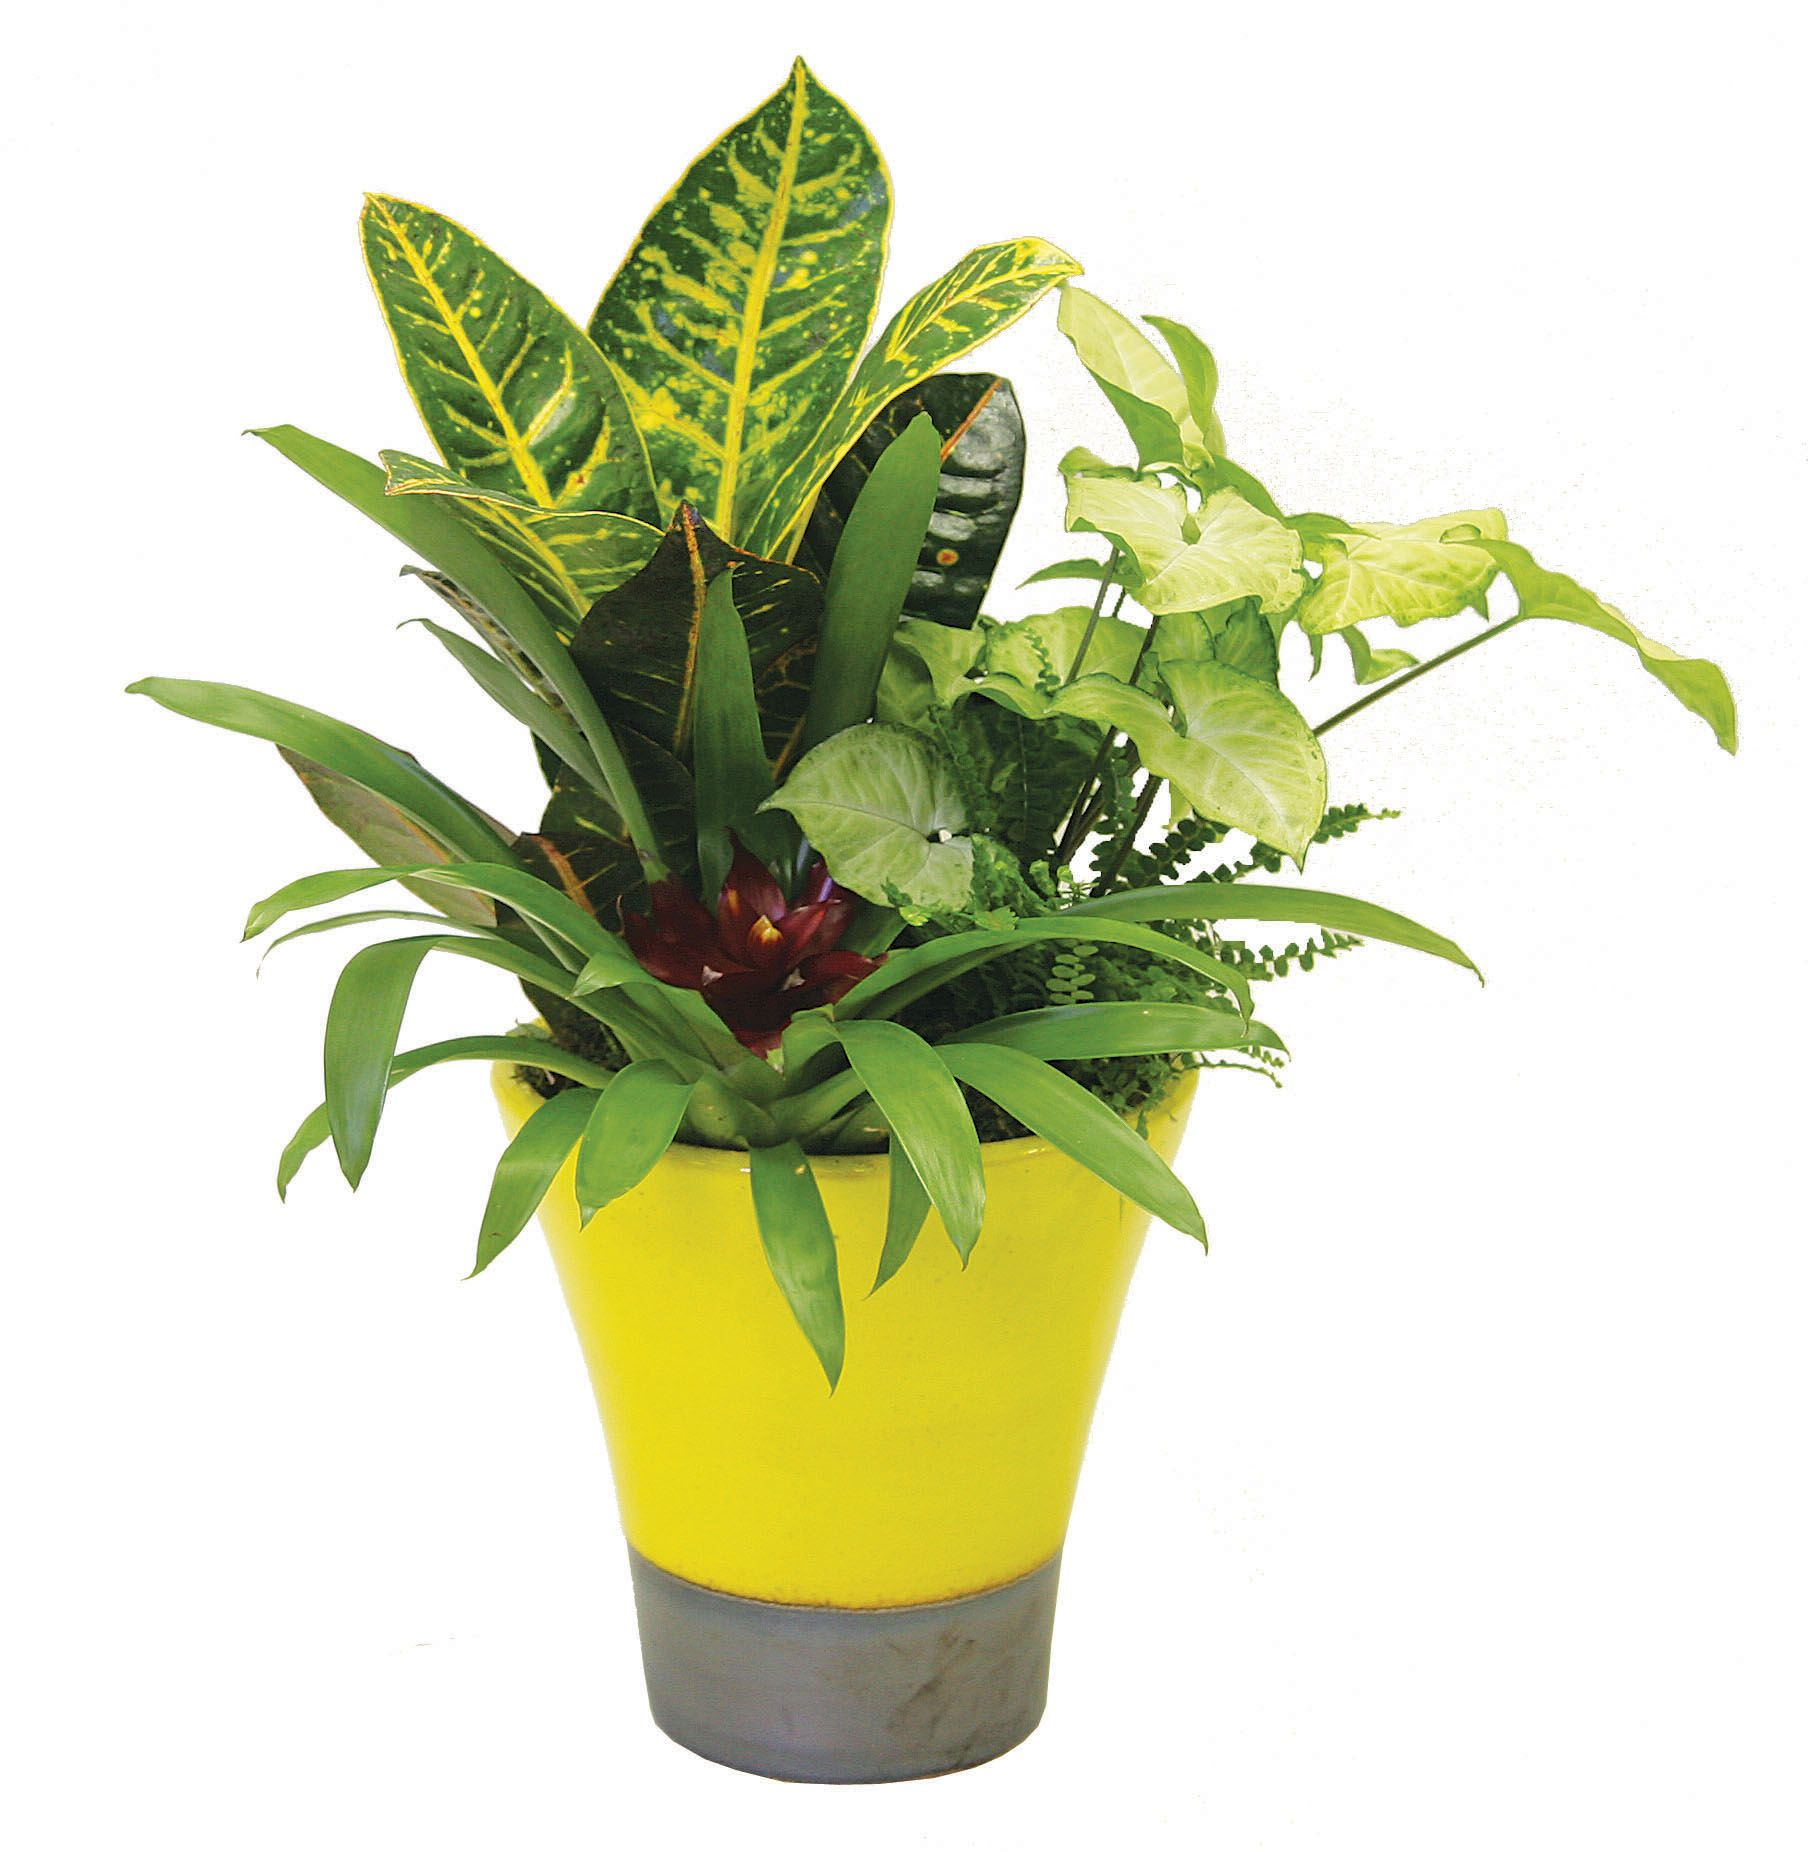 astonishing cement flower pots. Mix a variety of tropical plants in one pot to create stunning planter